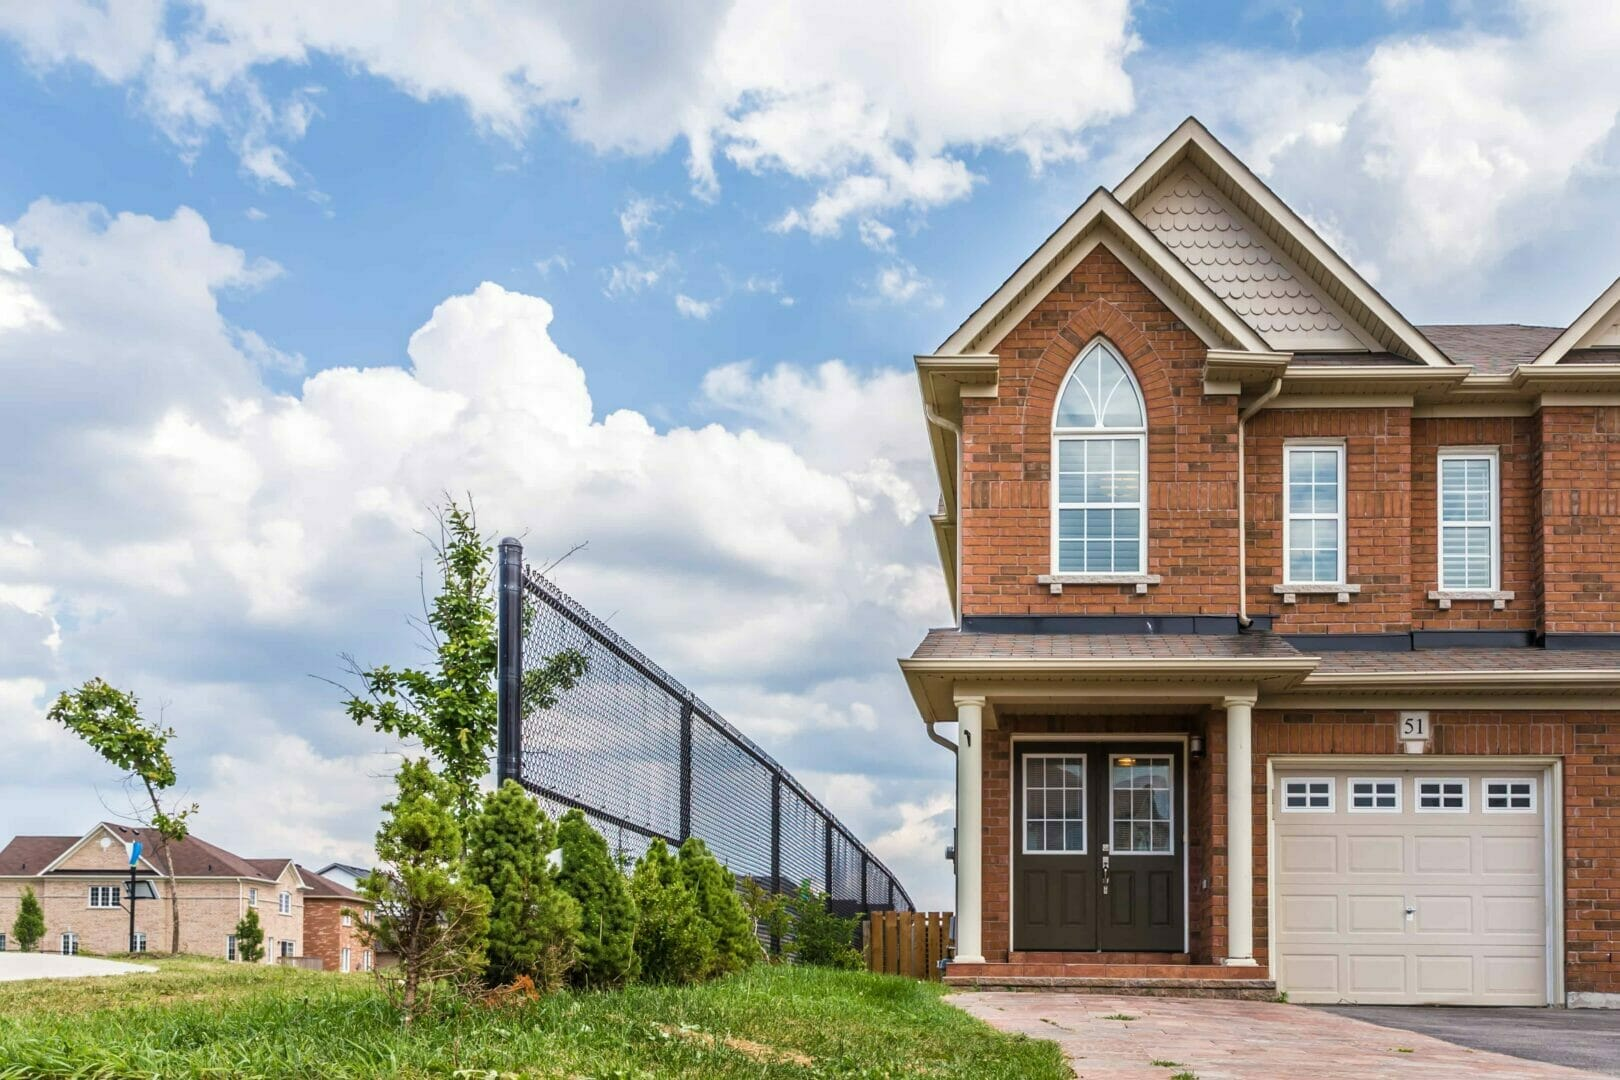 how to take professional real estate photos